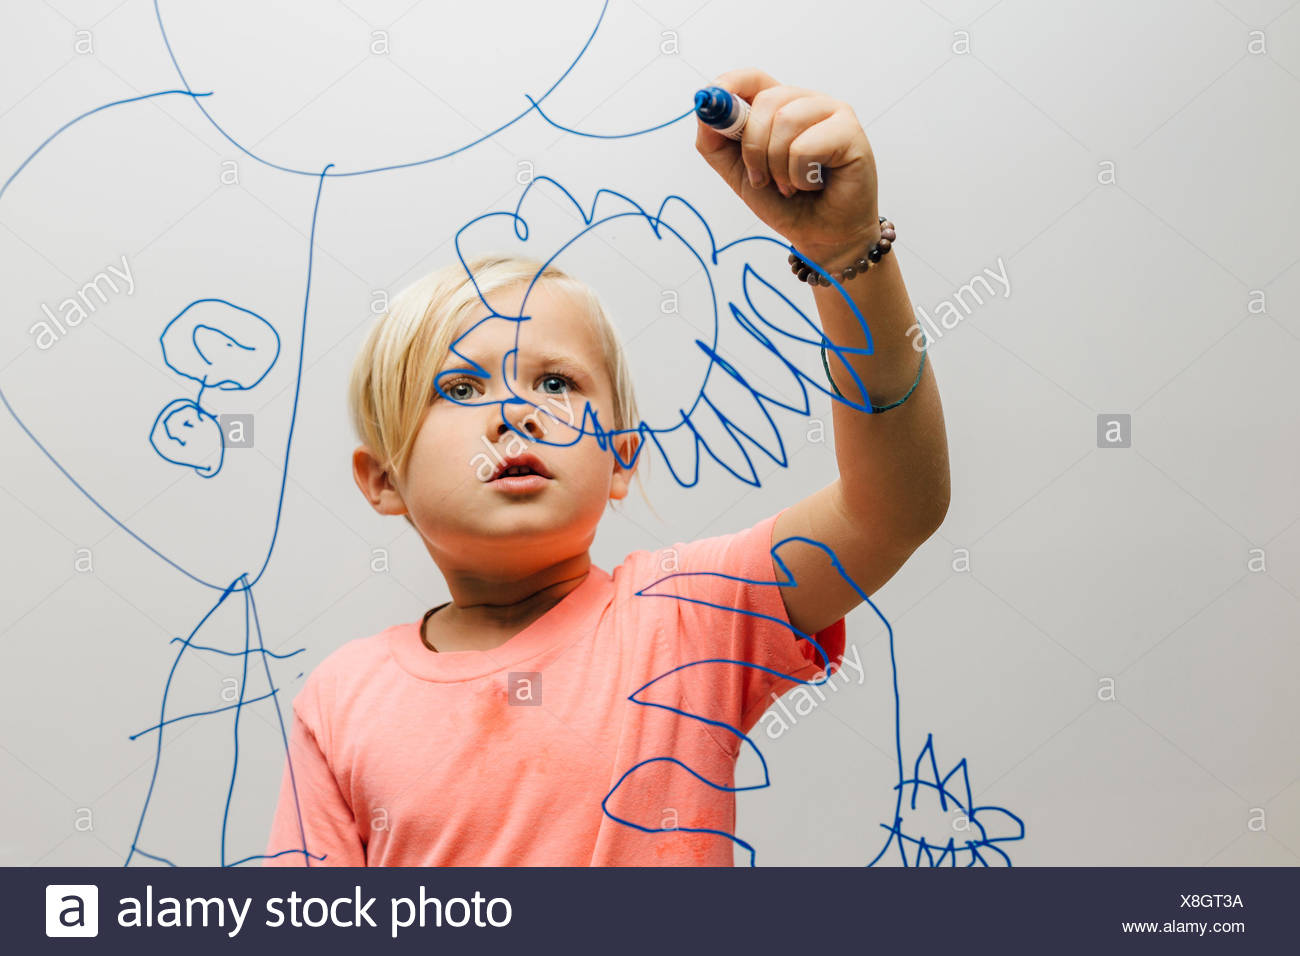 Boy drawing with marker pen onto glass wall - Stock Image